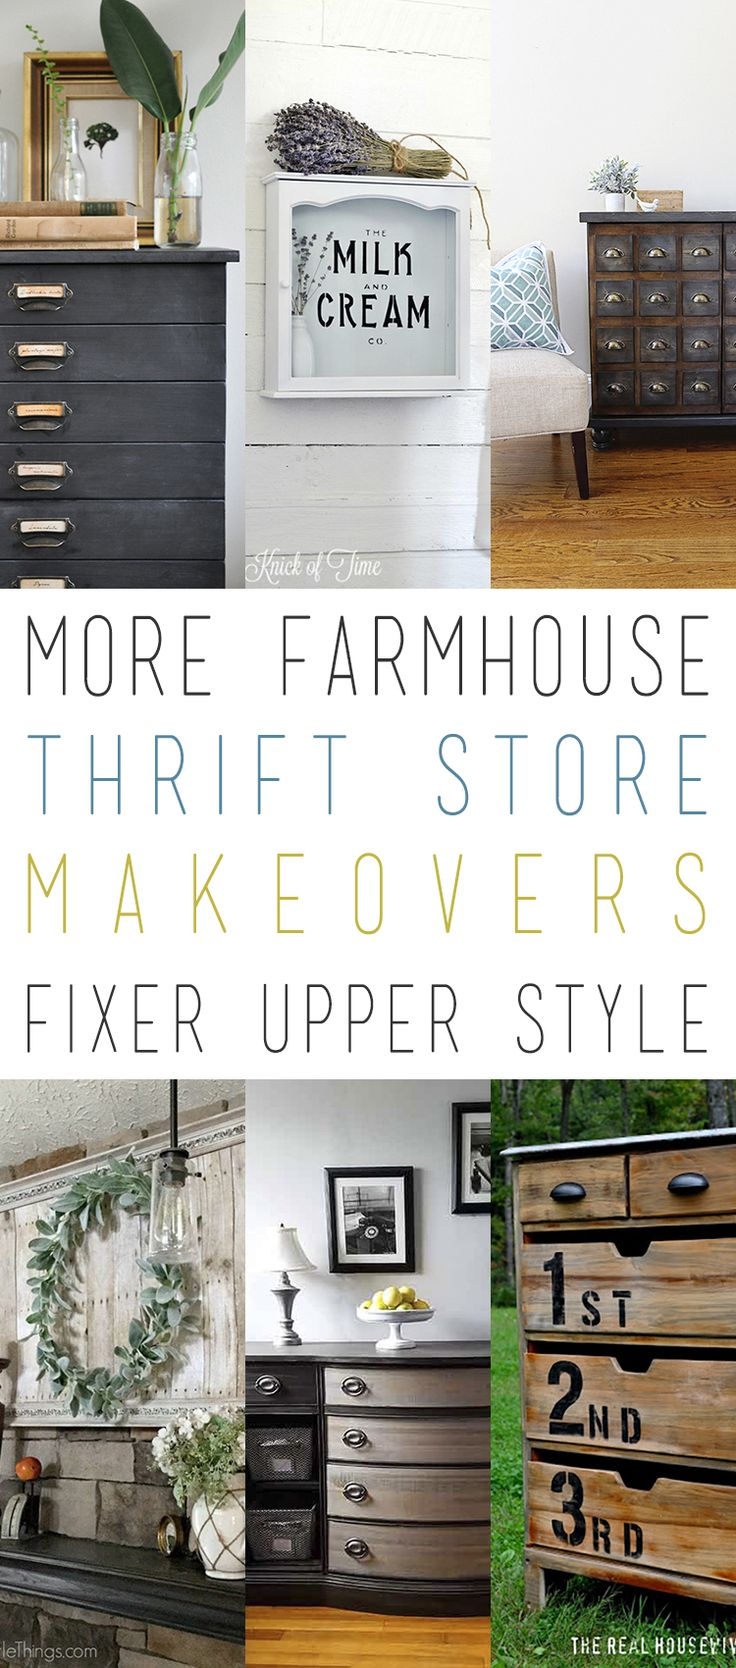 More Farmhouse Thrift Store Makeovers Fixer Upper Style!